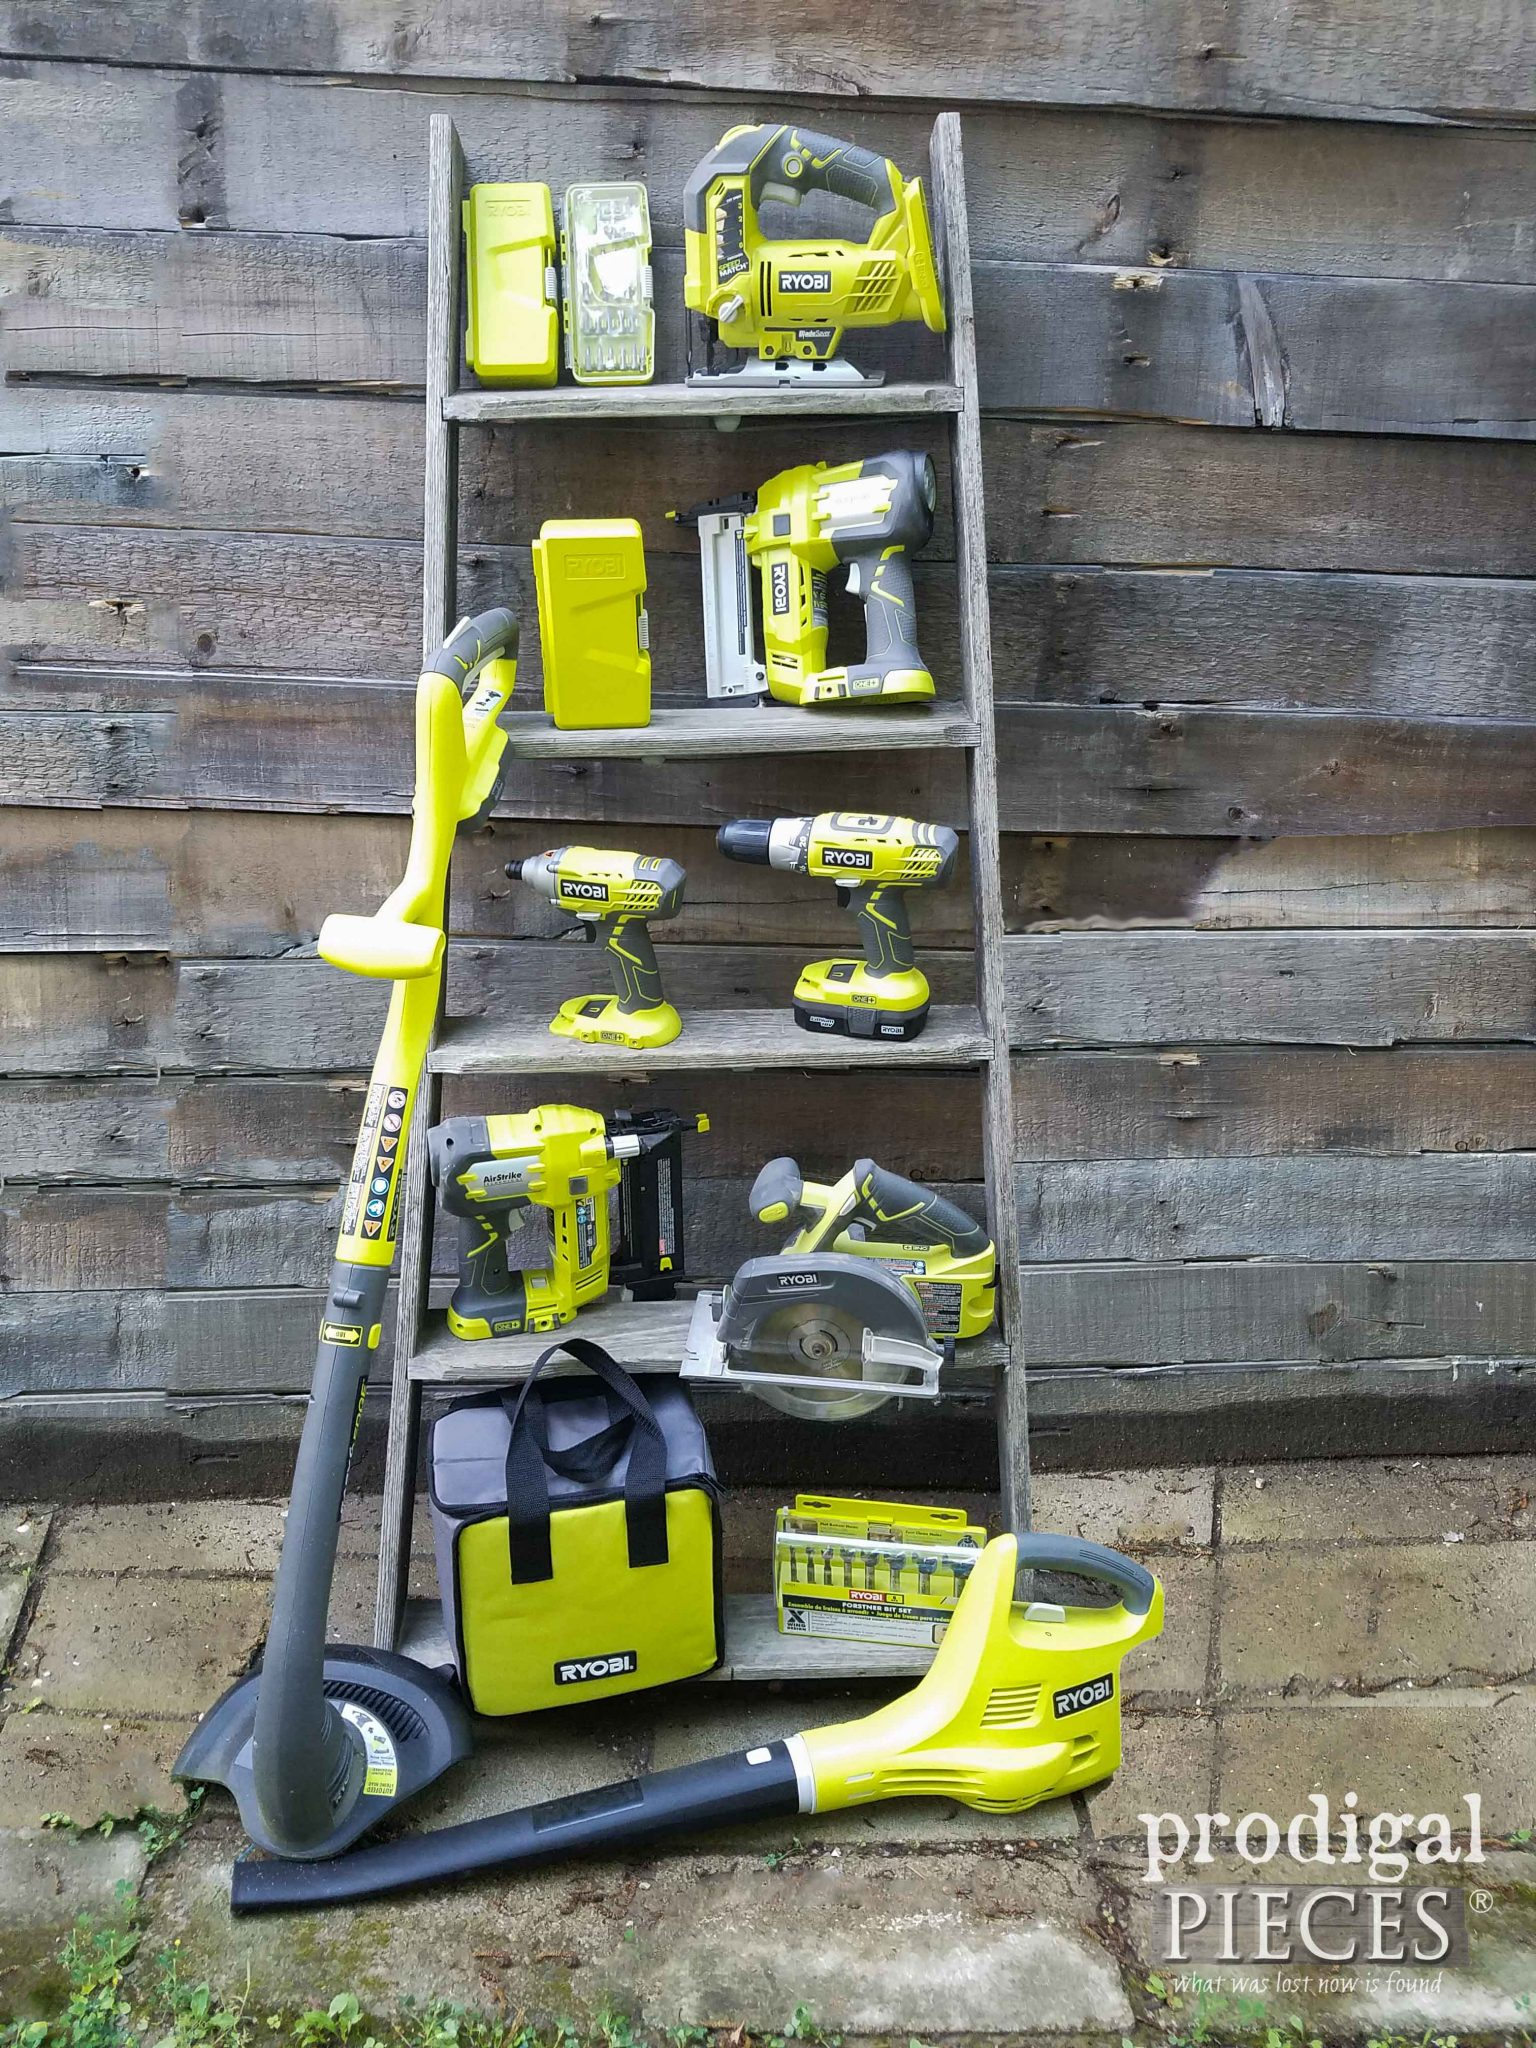 Collection of Ryobi ONE+ Tools for all you DIY needs | Prodigal Pieces | prodigalpieces.com